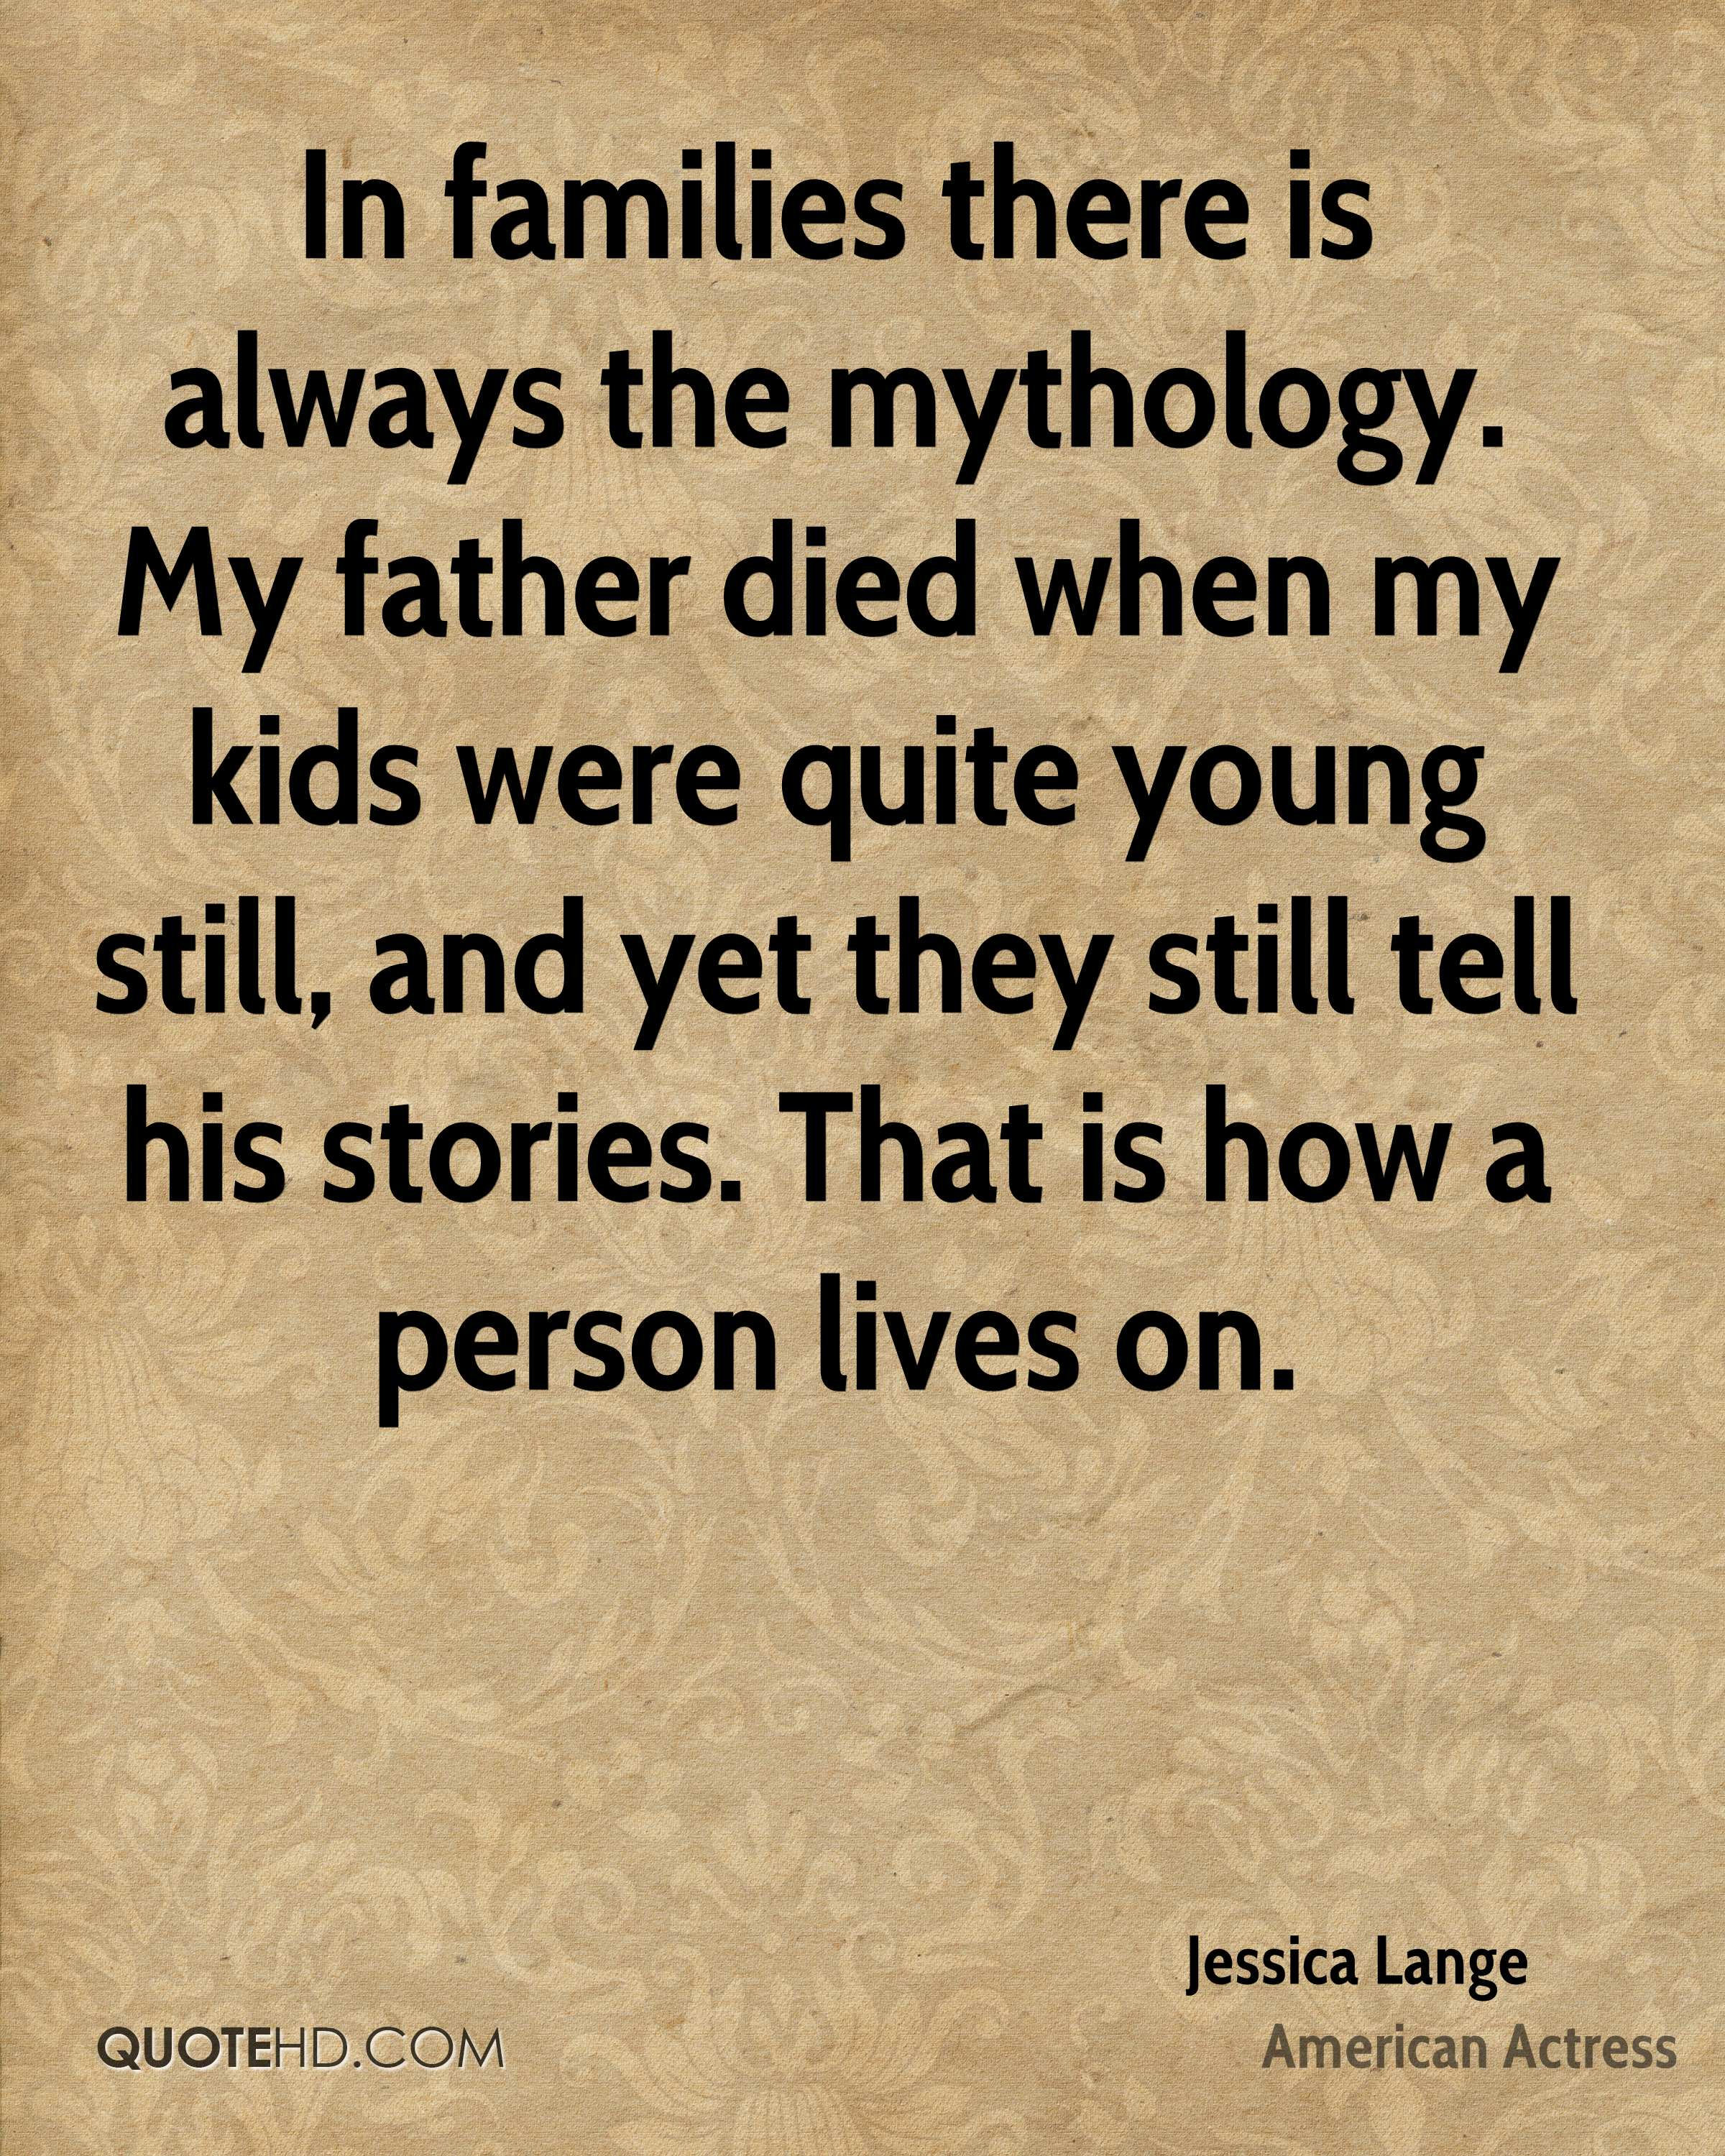 In families there is always the mythology. My father died when my kids were quite young still, and yet they still tell his stories. That is how a person lives on.